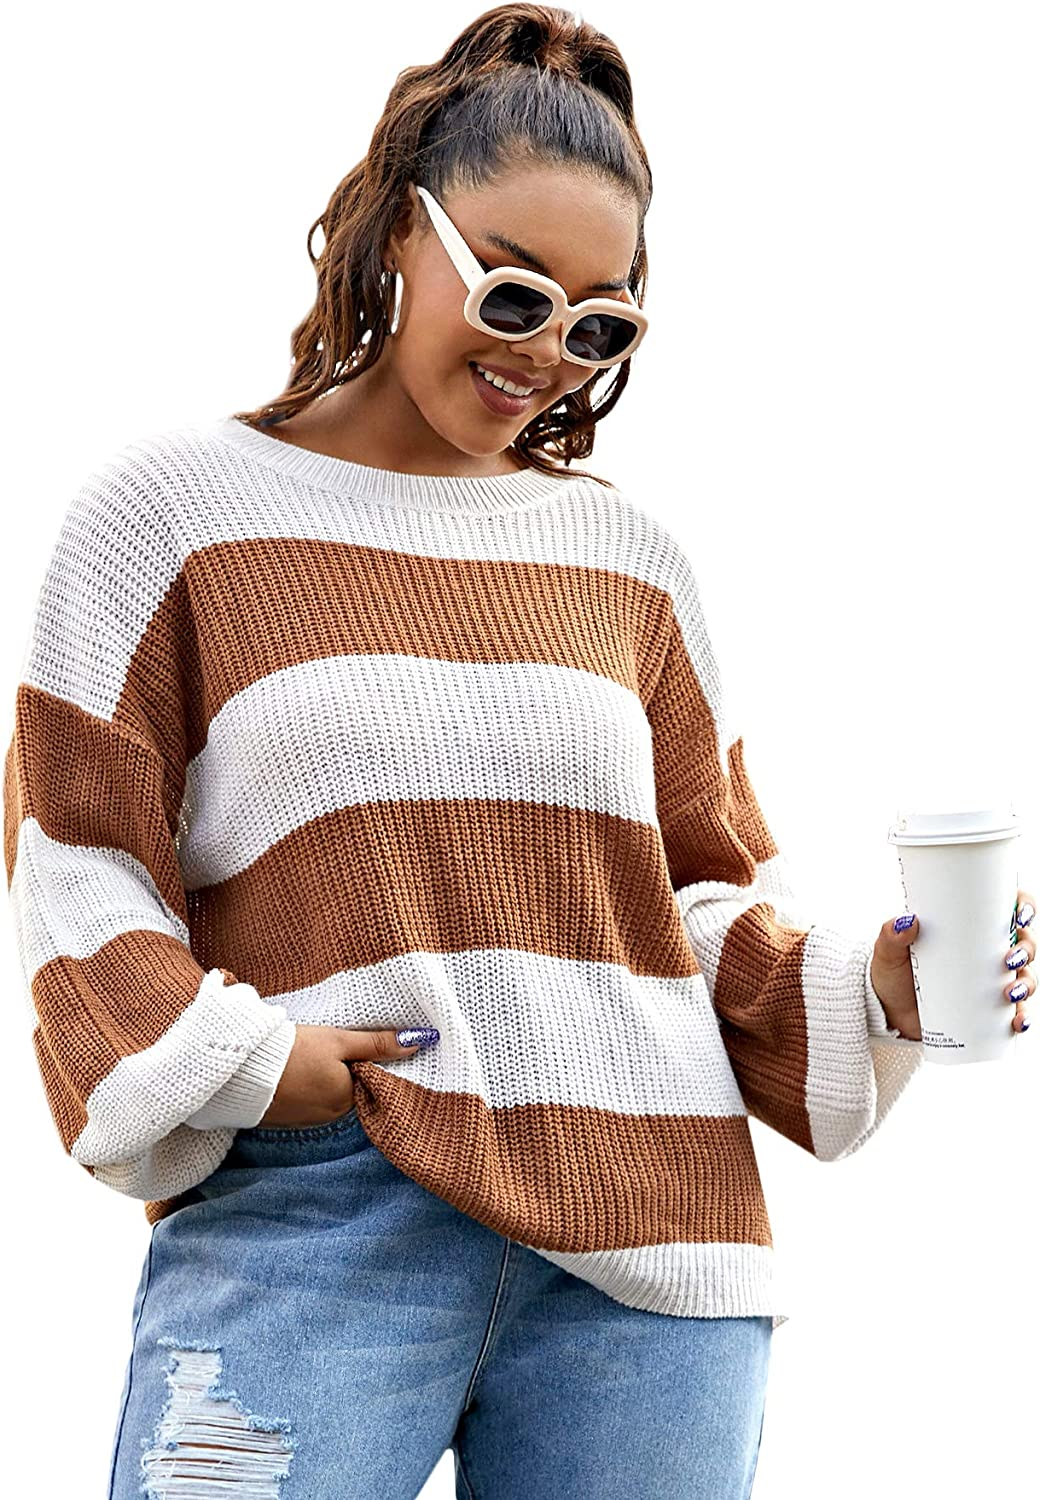 Floerns Women's Plus Casual Crew Neck Long Sleeve Color Block Knit Loose Pullovers Sweater